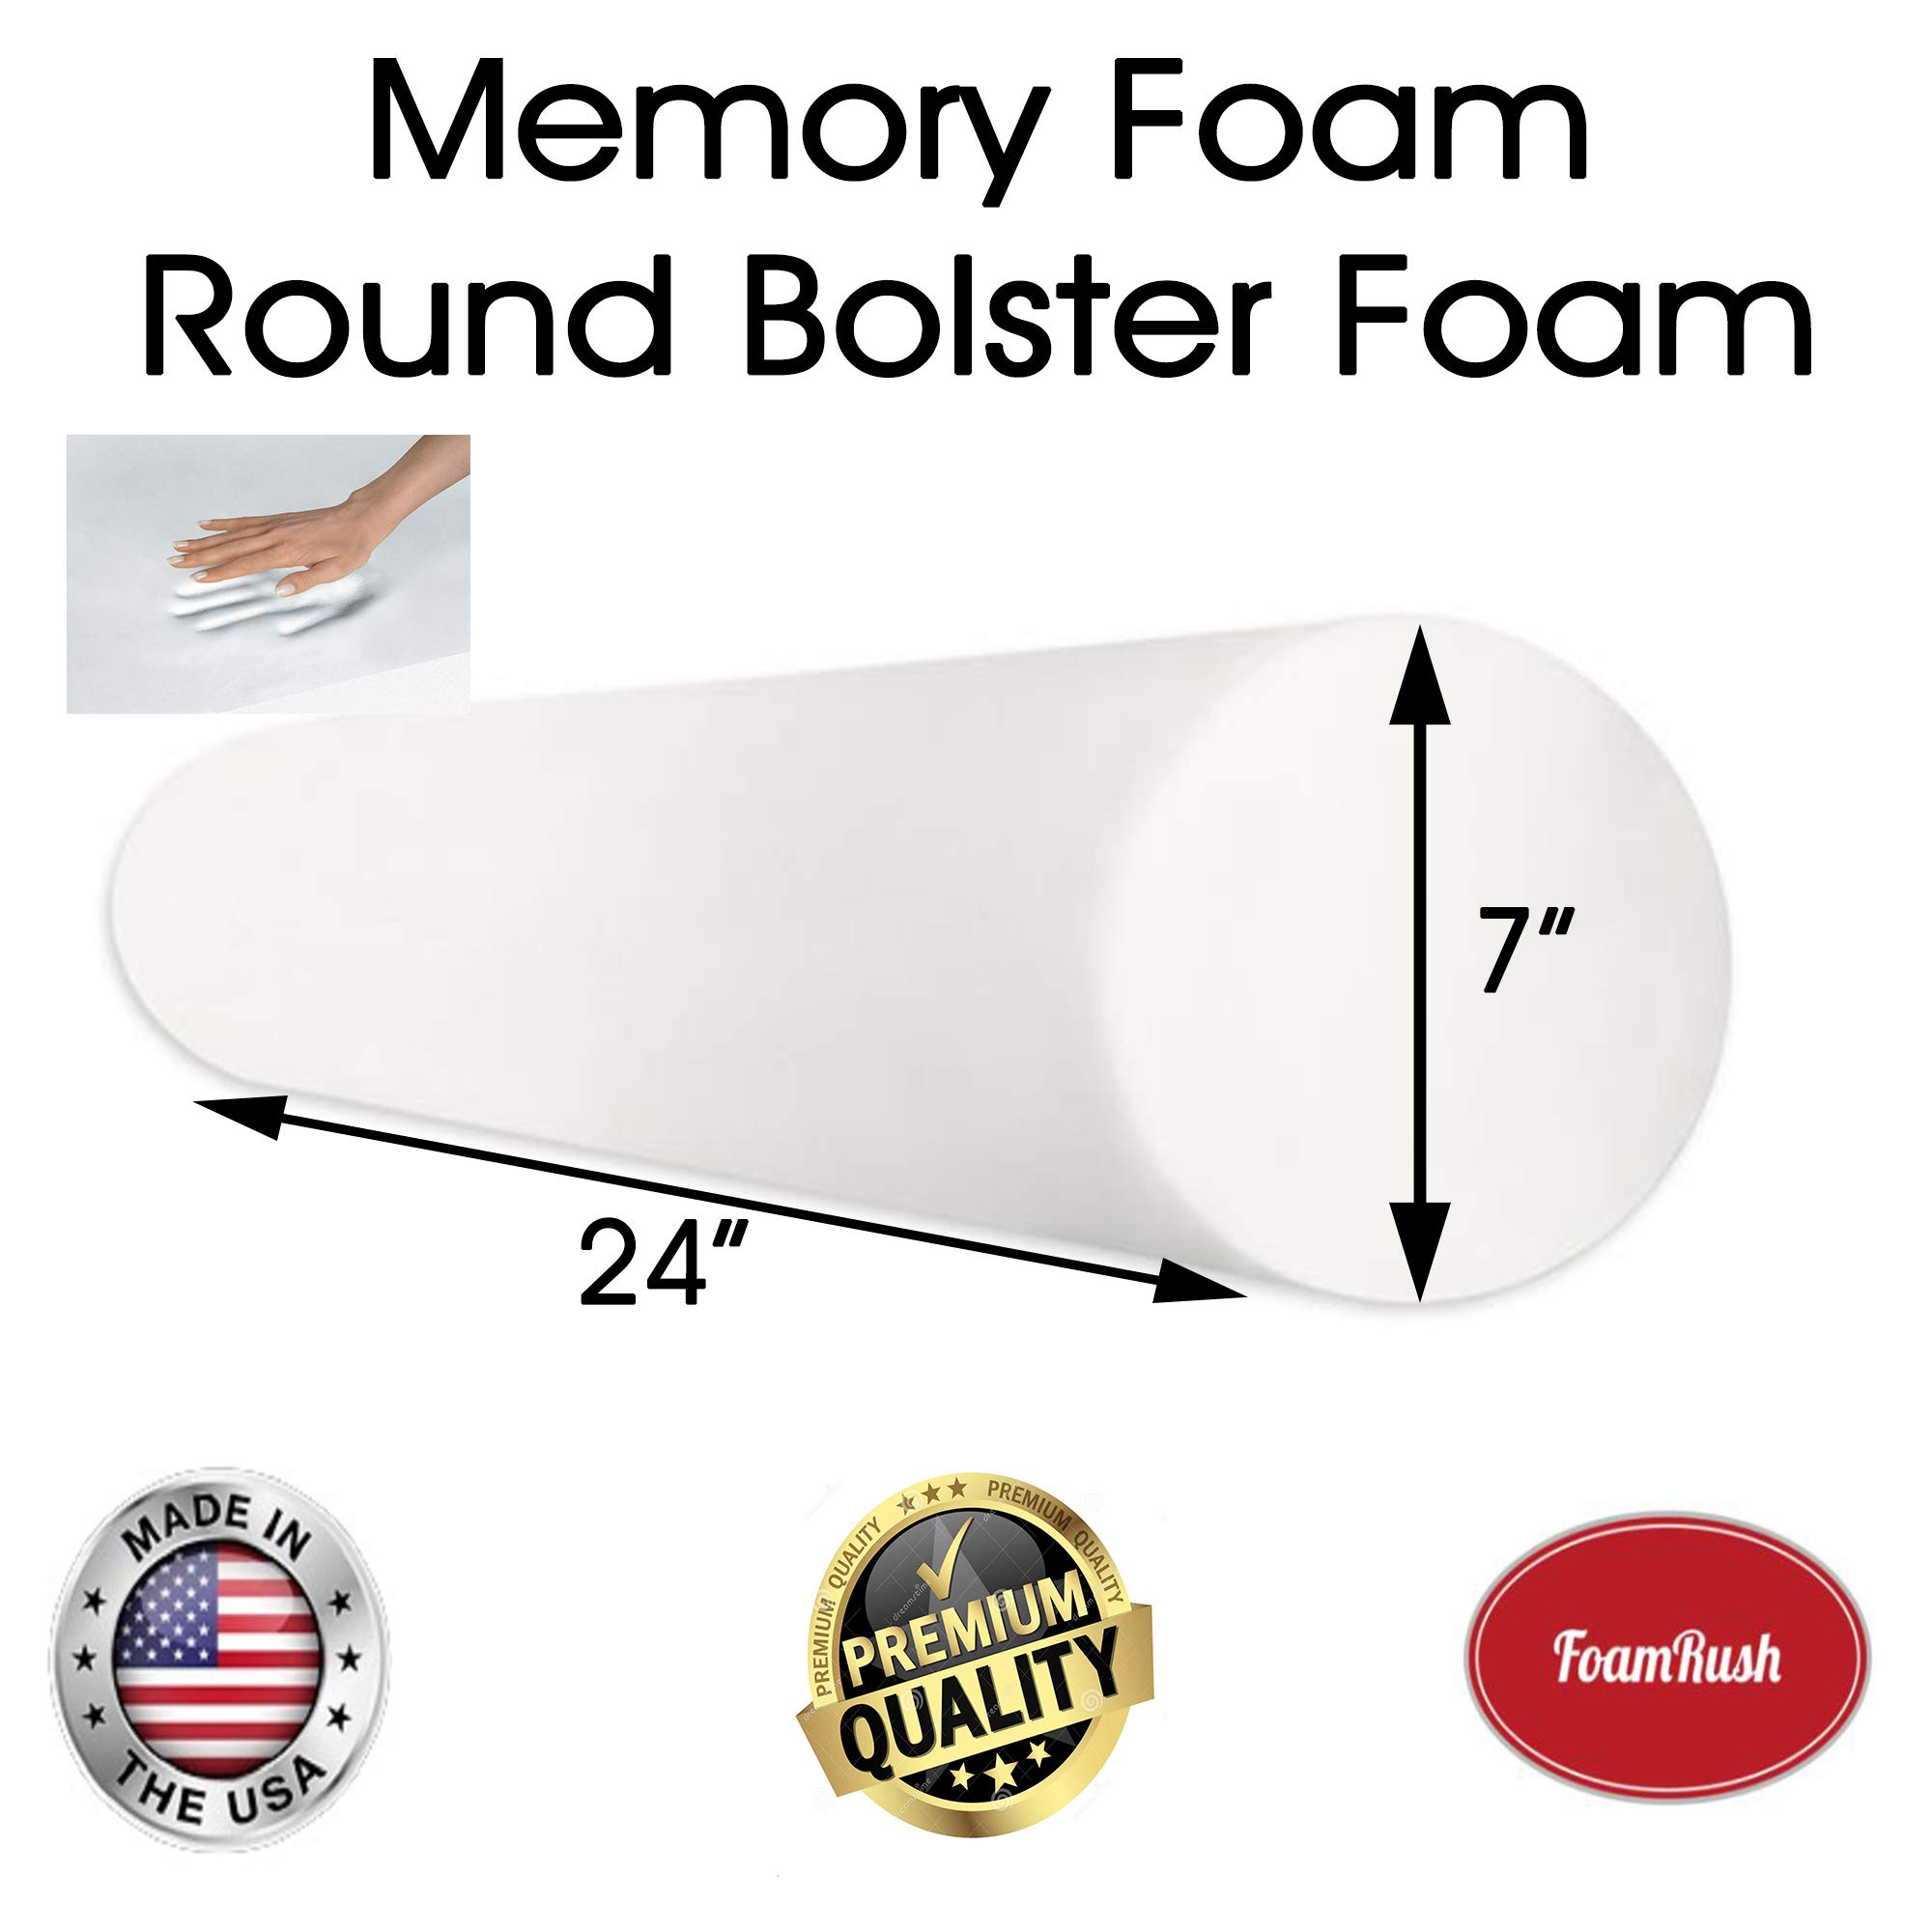 FoamRush 7'' Diameter x 24'' Long Premium Quality Round Bolster Memory Foam Roll Insert Replacement (Ideal for Home Accent Décor Positioning and General Fitness) Made in USA